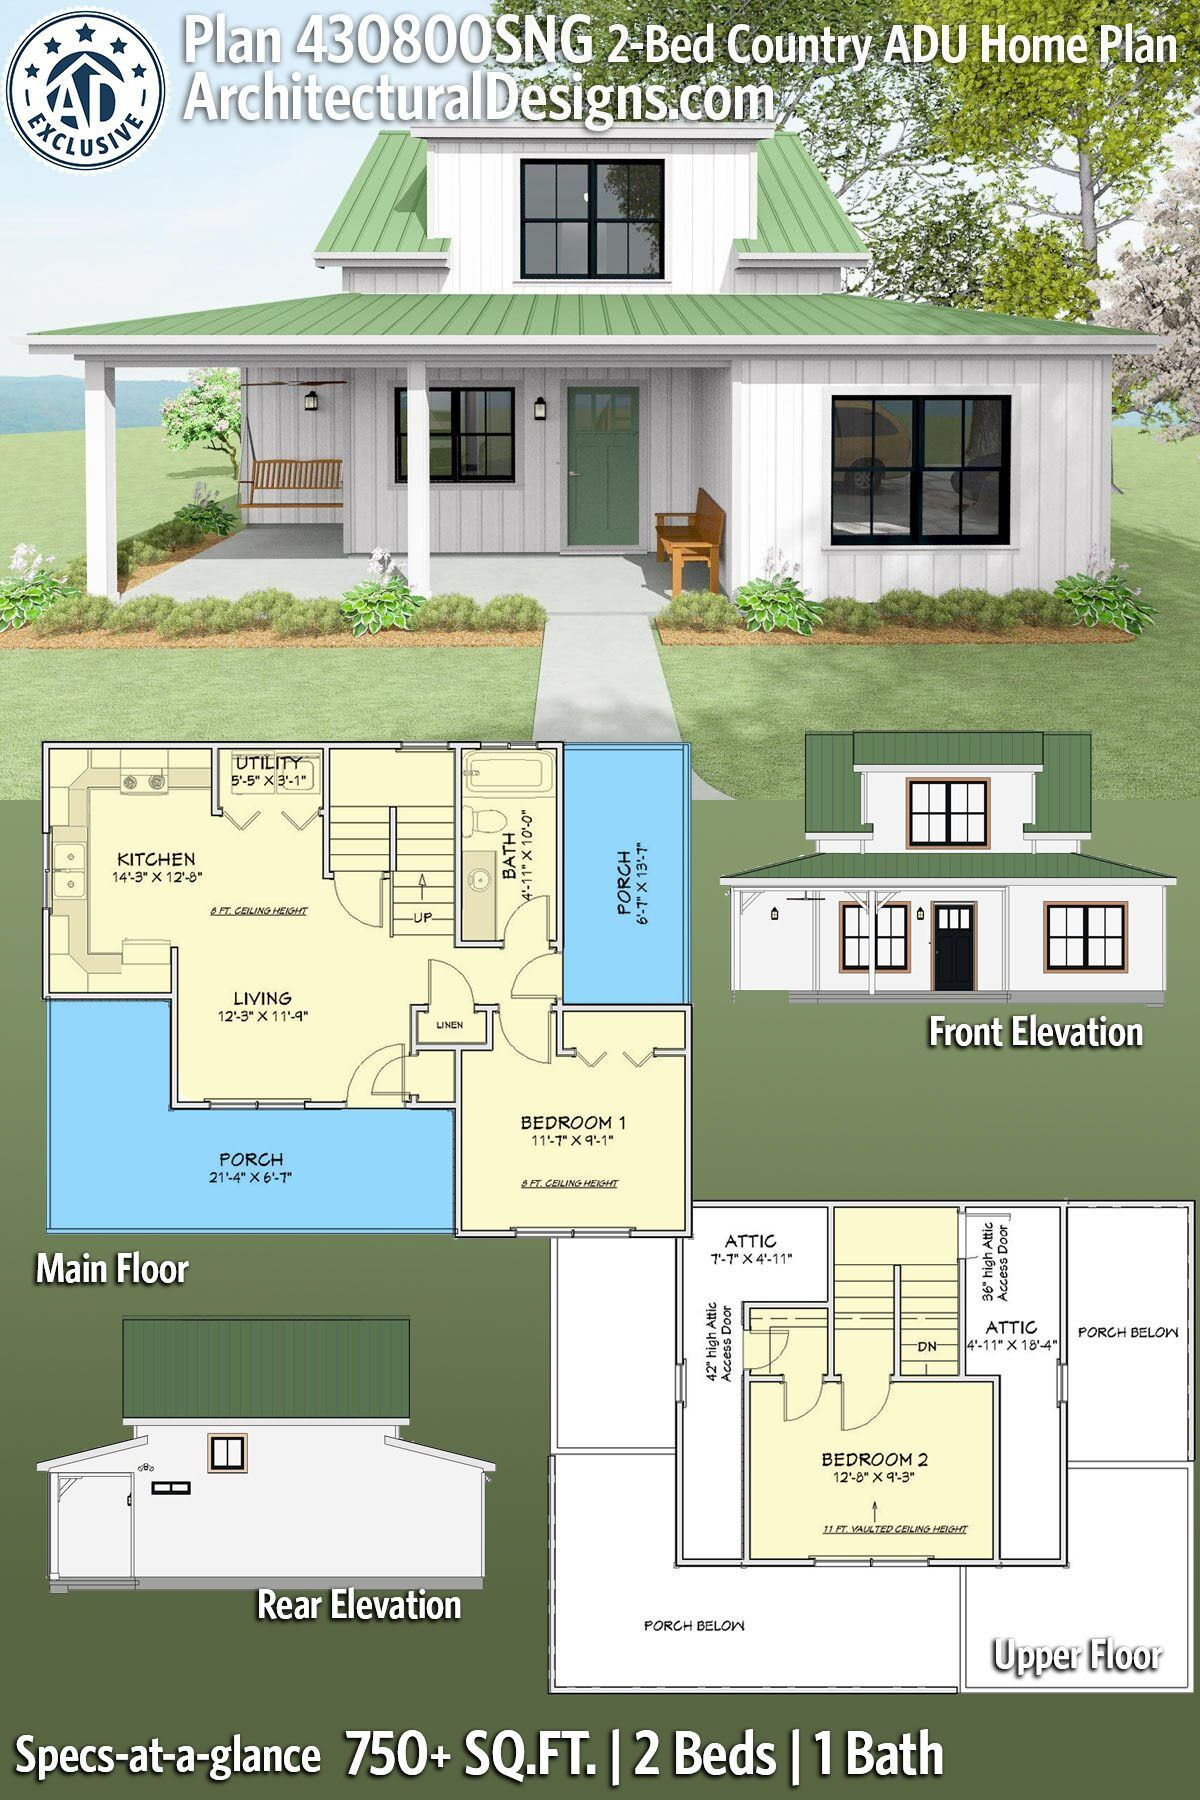 Plan 430800sng Quaint 2 Bed House Plan With Wrap Around Porch Architectural House Plans Vacation House Plans House Plans Farmhouse